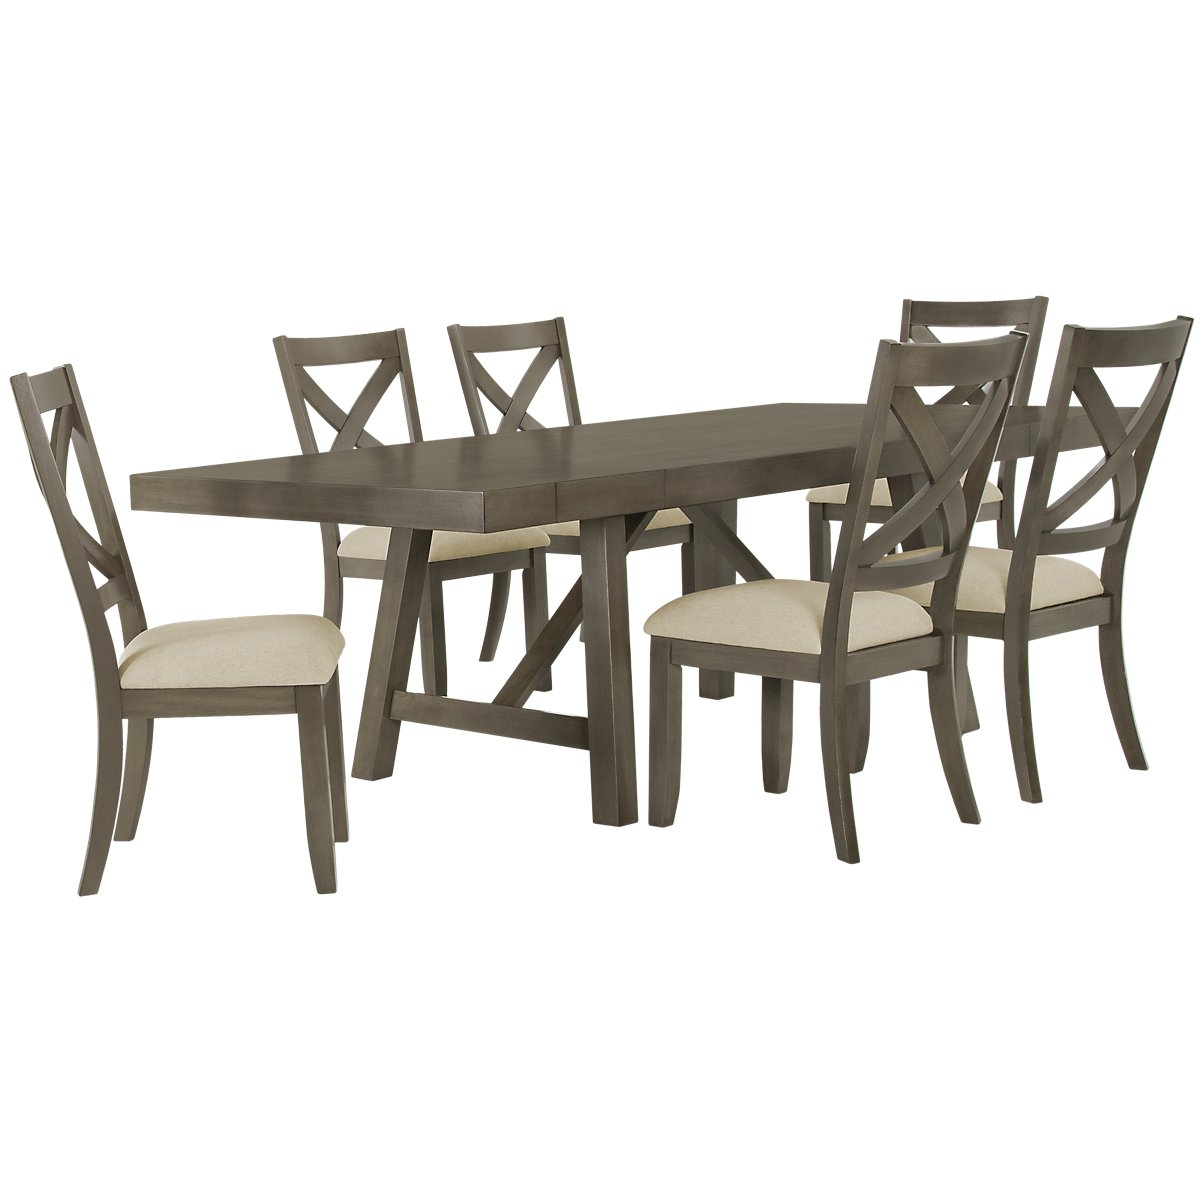 Omaha Gray Wood Table & 4 Wood Chairs